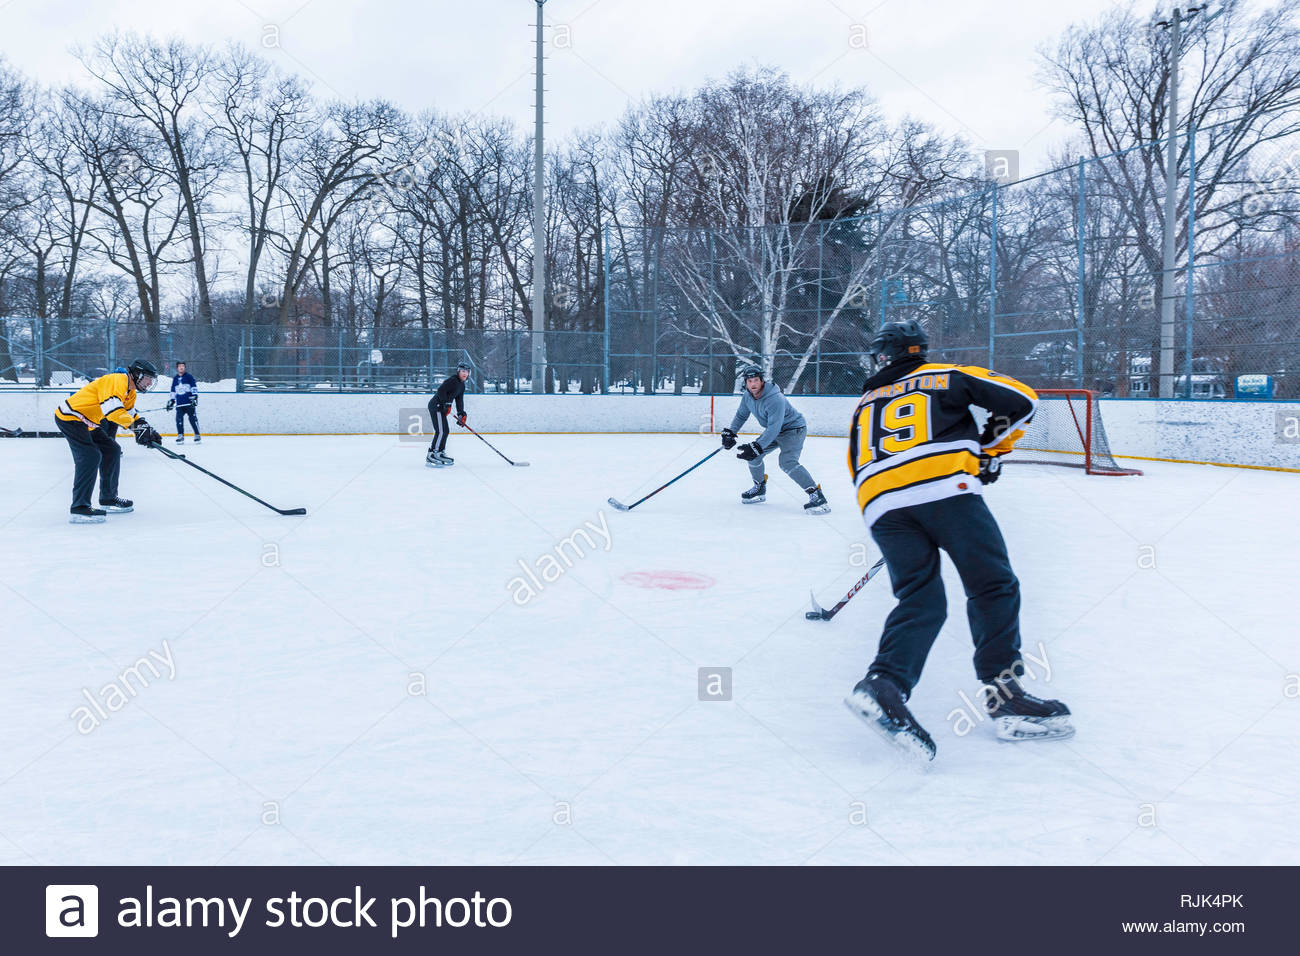 Shinney pickup ice hockey, Canada's national winter sport, on city rink in The Beaches area of Toronto Ontario Canada - Stock Image